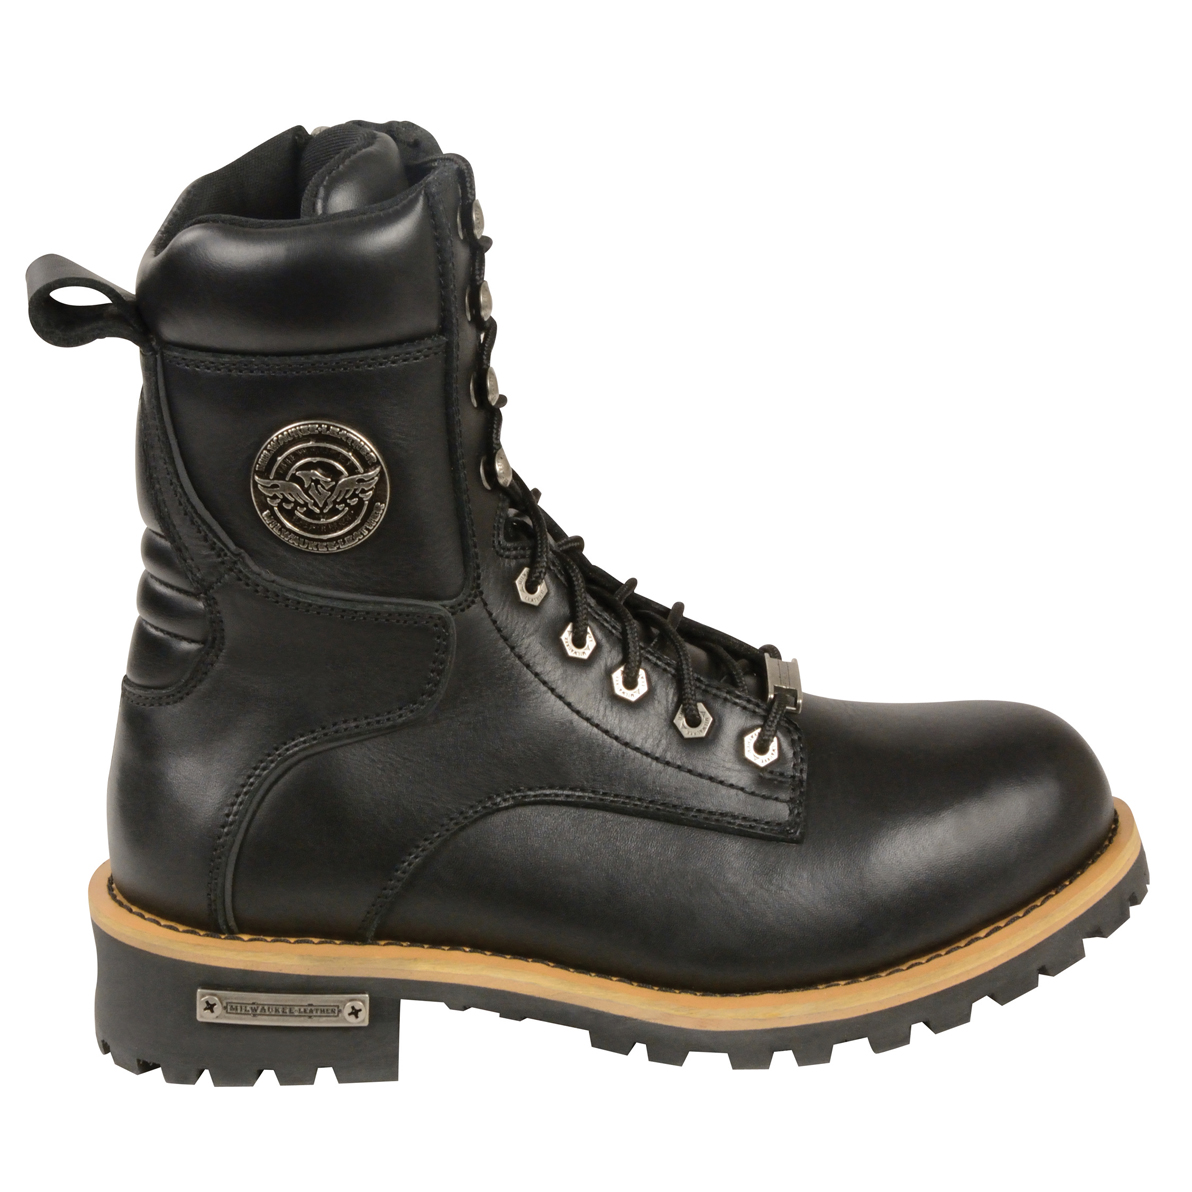 Official universities2017.ml Site - Lace up a pair of mens boots on sale for work, hiking, or for a casual look in the cooler months. Find styles from outdoor boots to stylish leather boots Great brands.